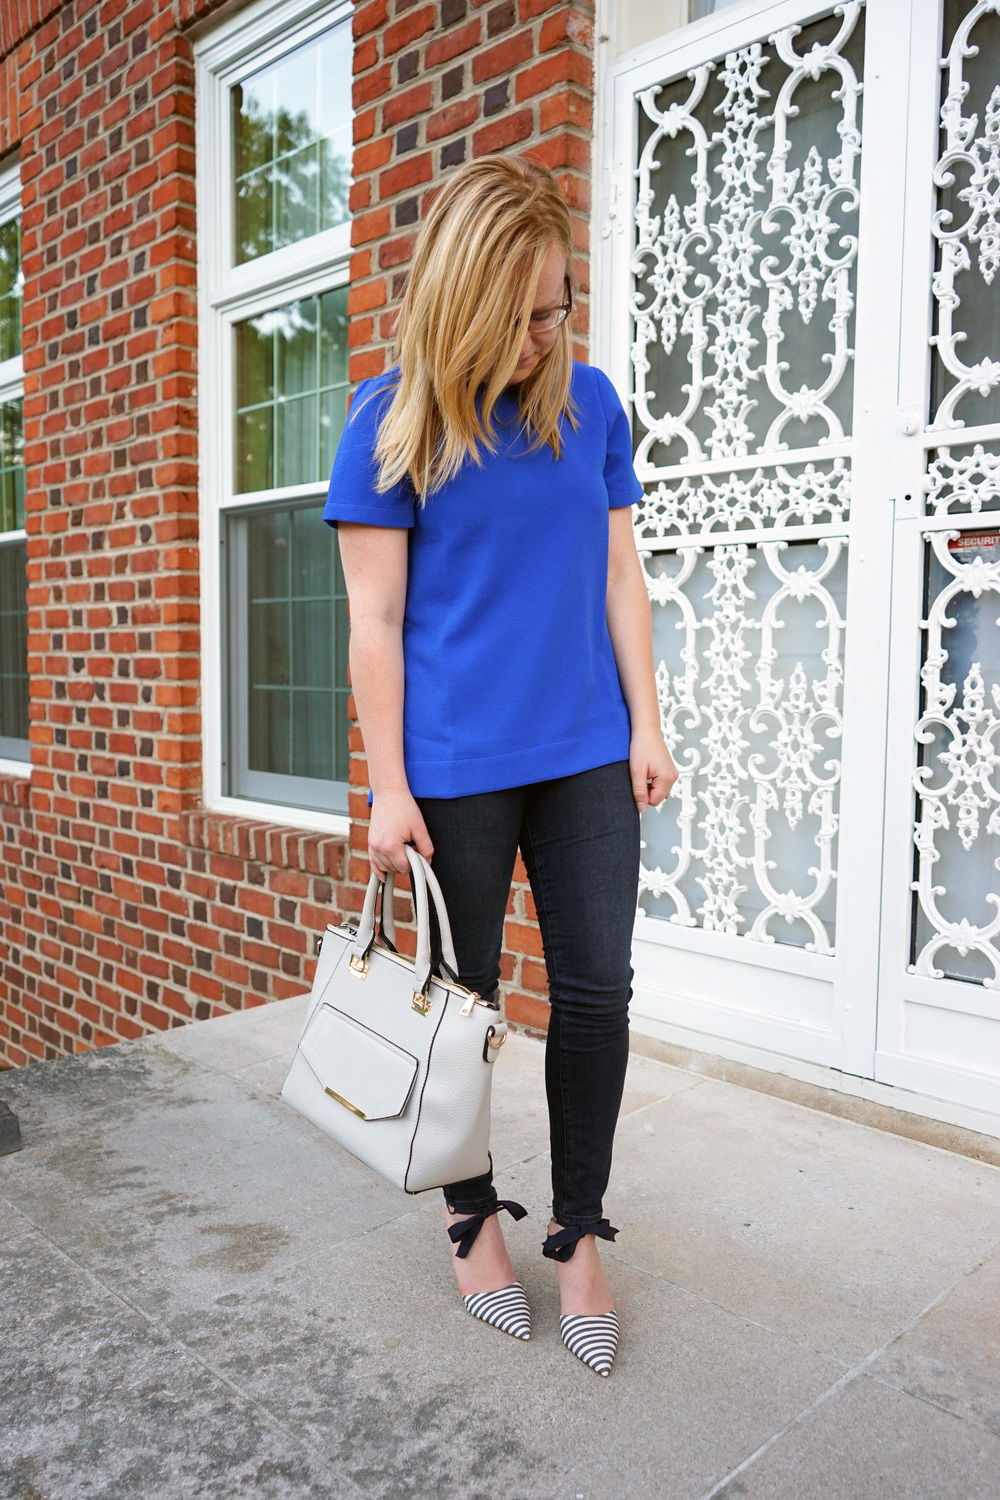 Maggie a la Mode - J Crew Elsie Bow-Tie Pumps, Madewell Trailored Tee, Paige Verdugo Skinny Jean Reed, Urban Expressions Gia Satchel